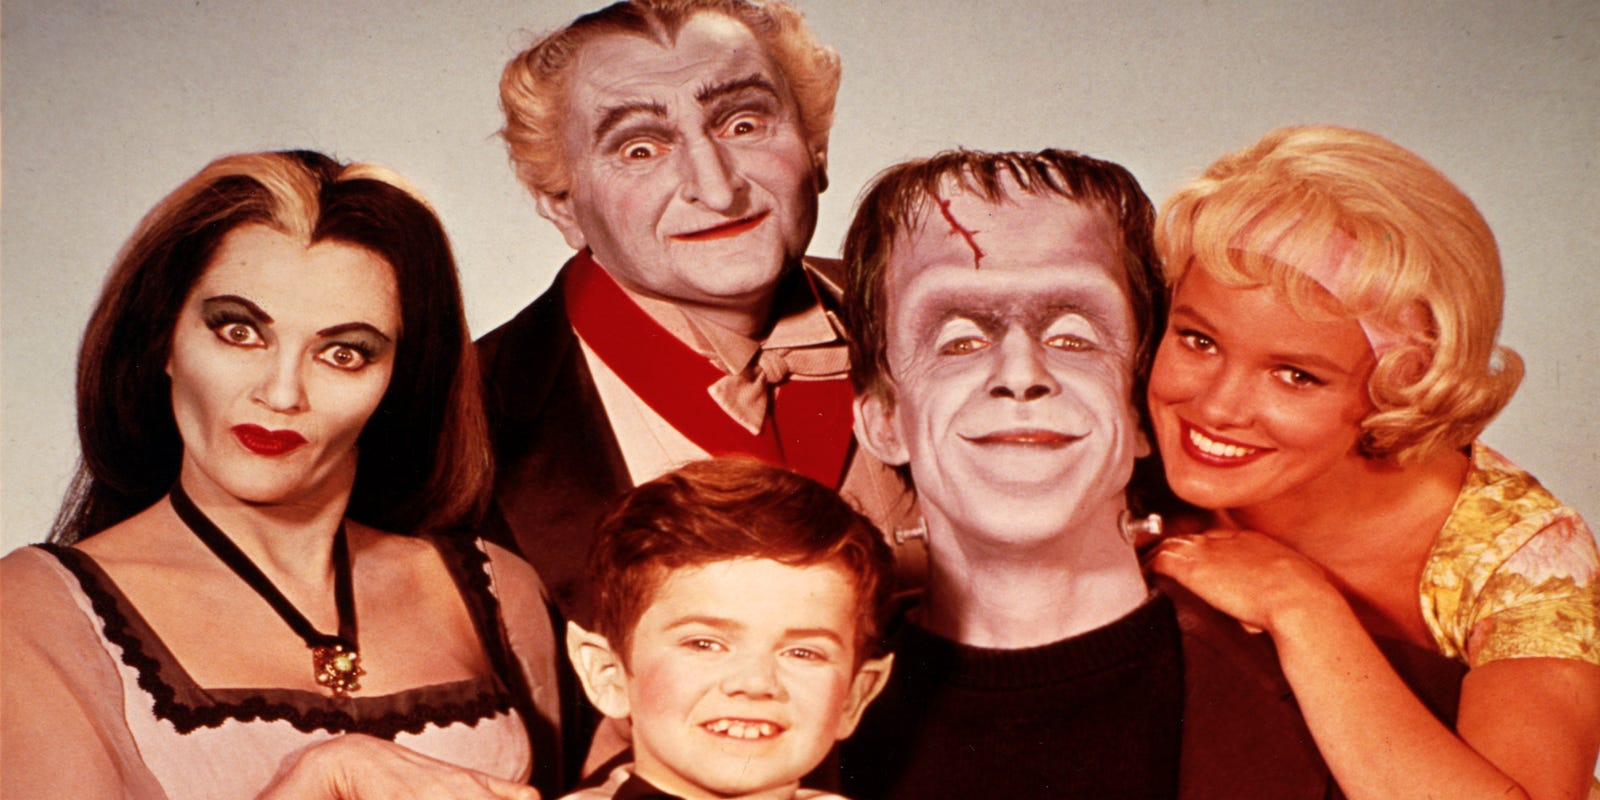 The Munsters' actress Beverley Owen has died at age 81